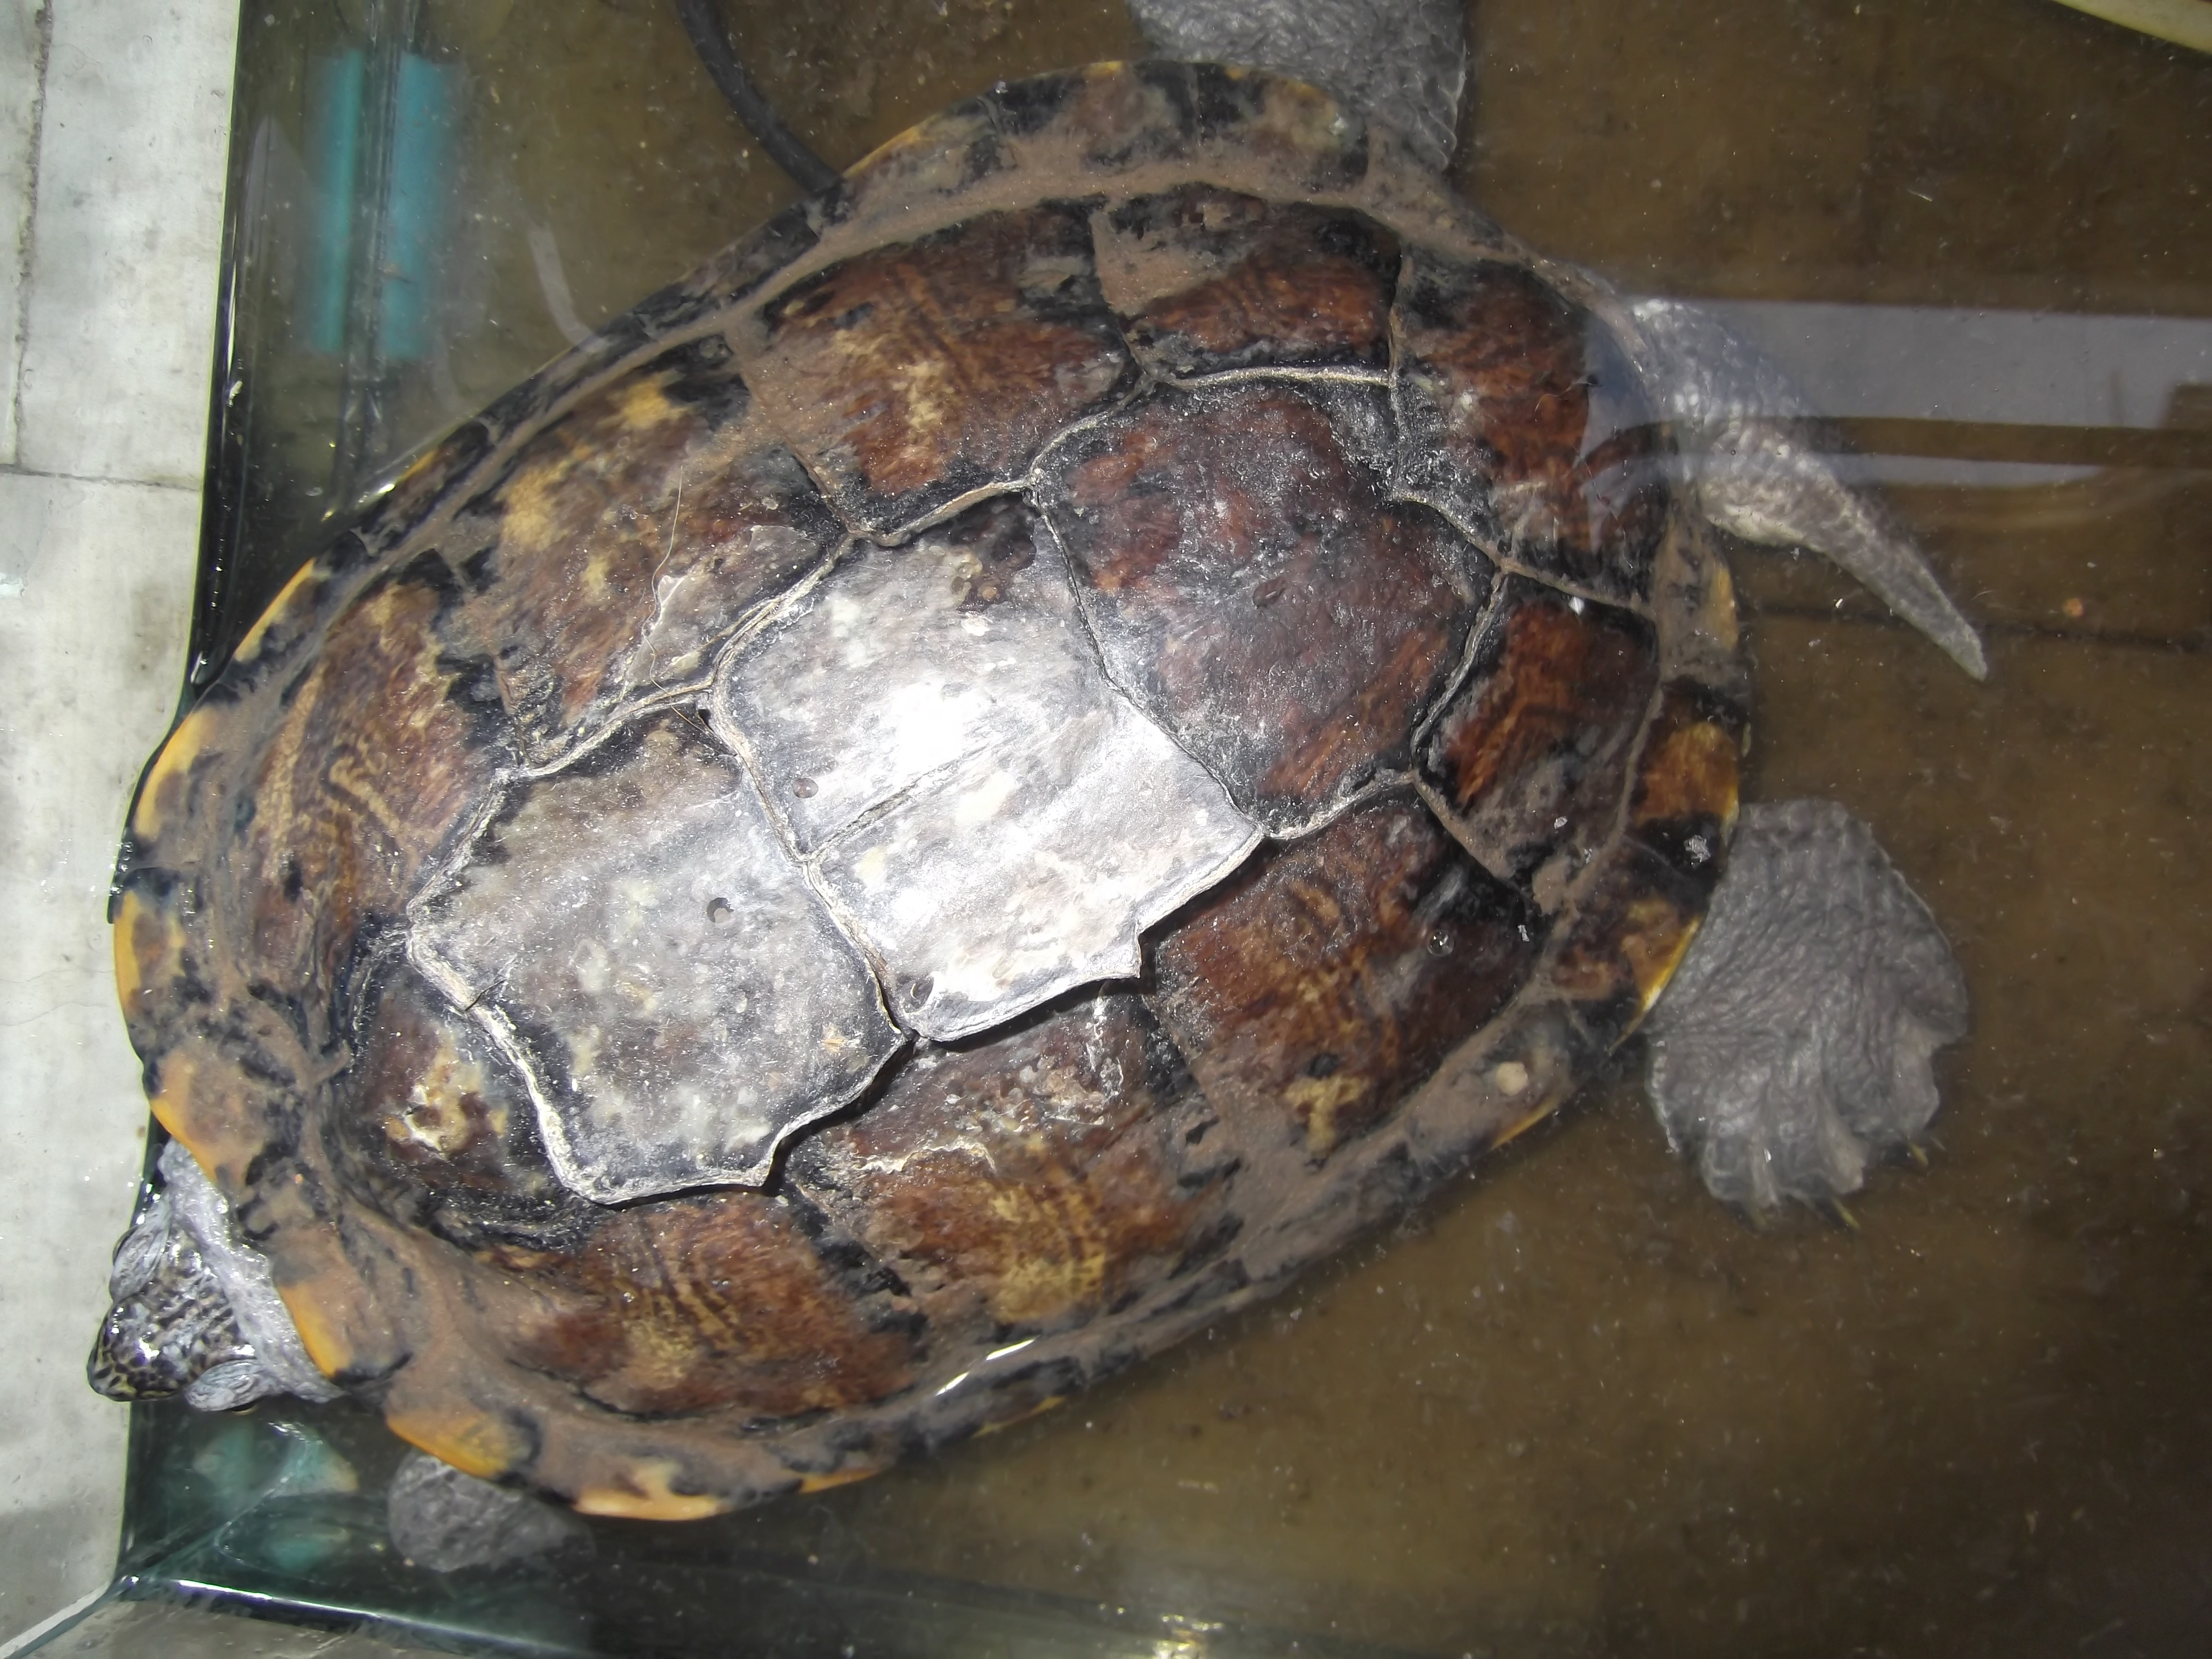 This Terrapin Is In The Process Of Shedding It S Shell If You Look At Sections Middle Can See They Are About To Fall Off